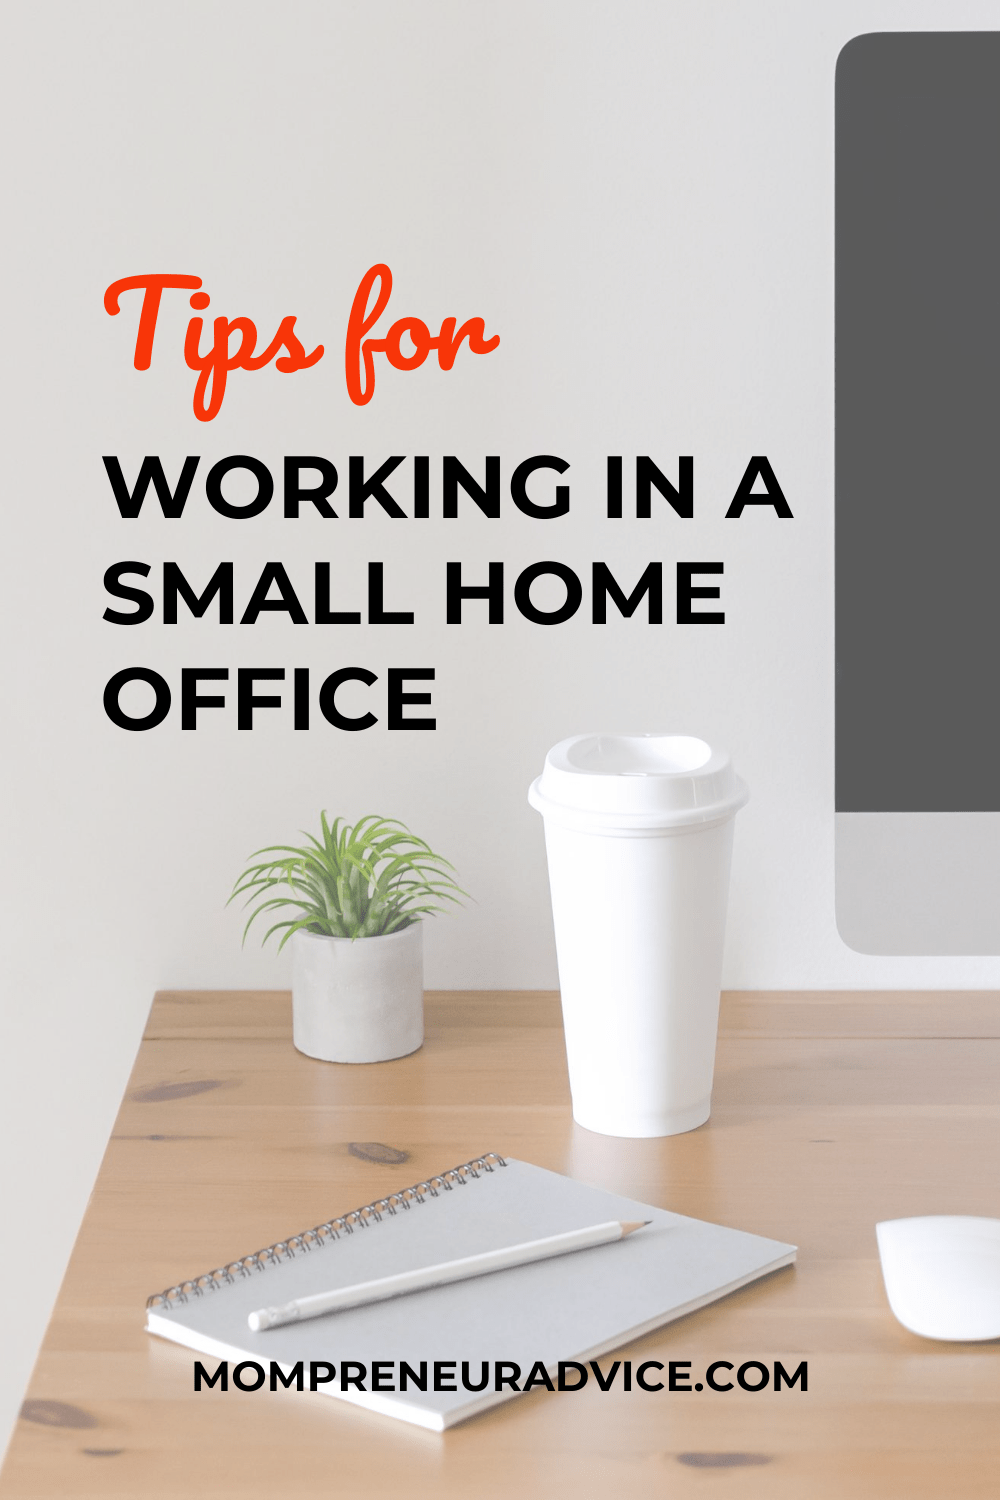 Tips for working in a small home office - mompreneuradvice.com